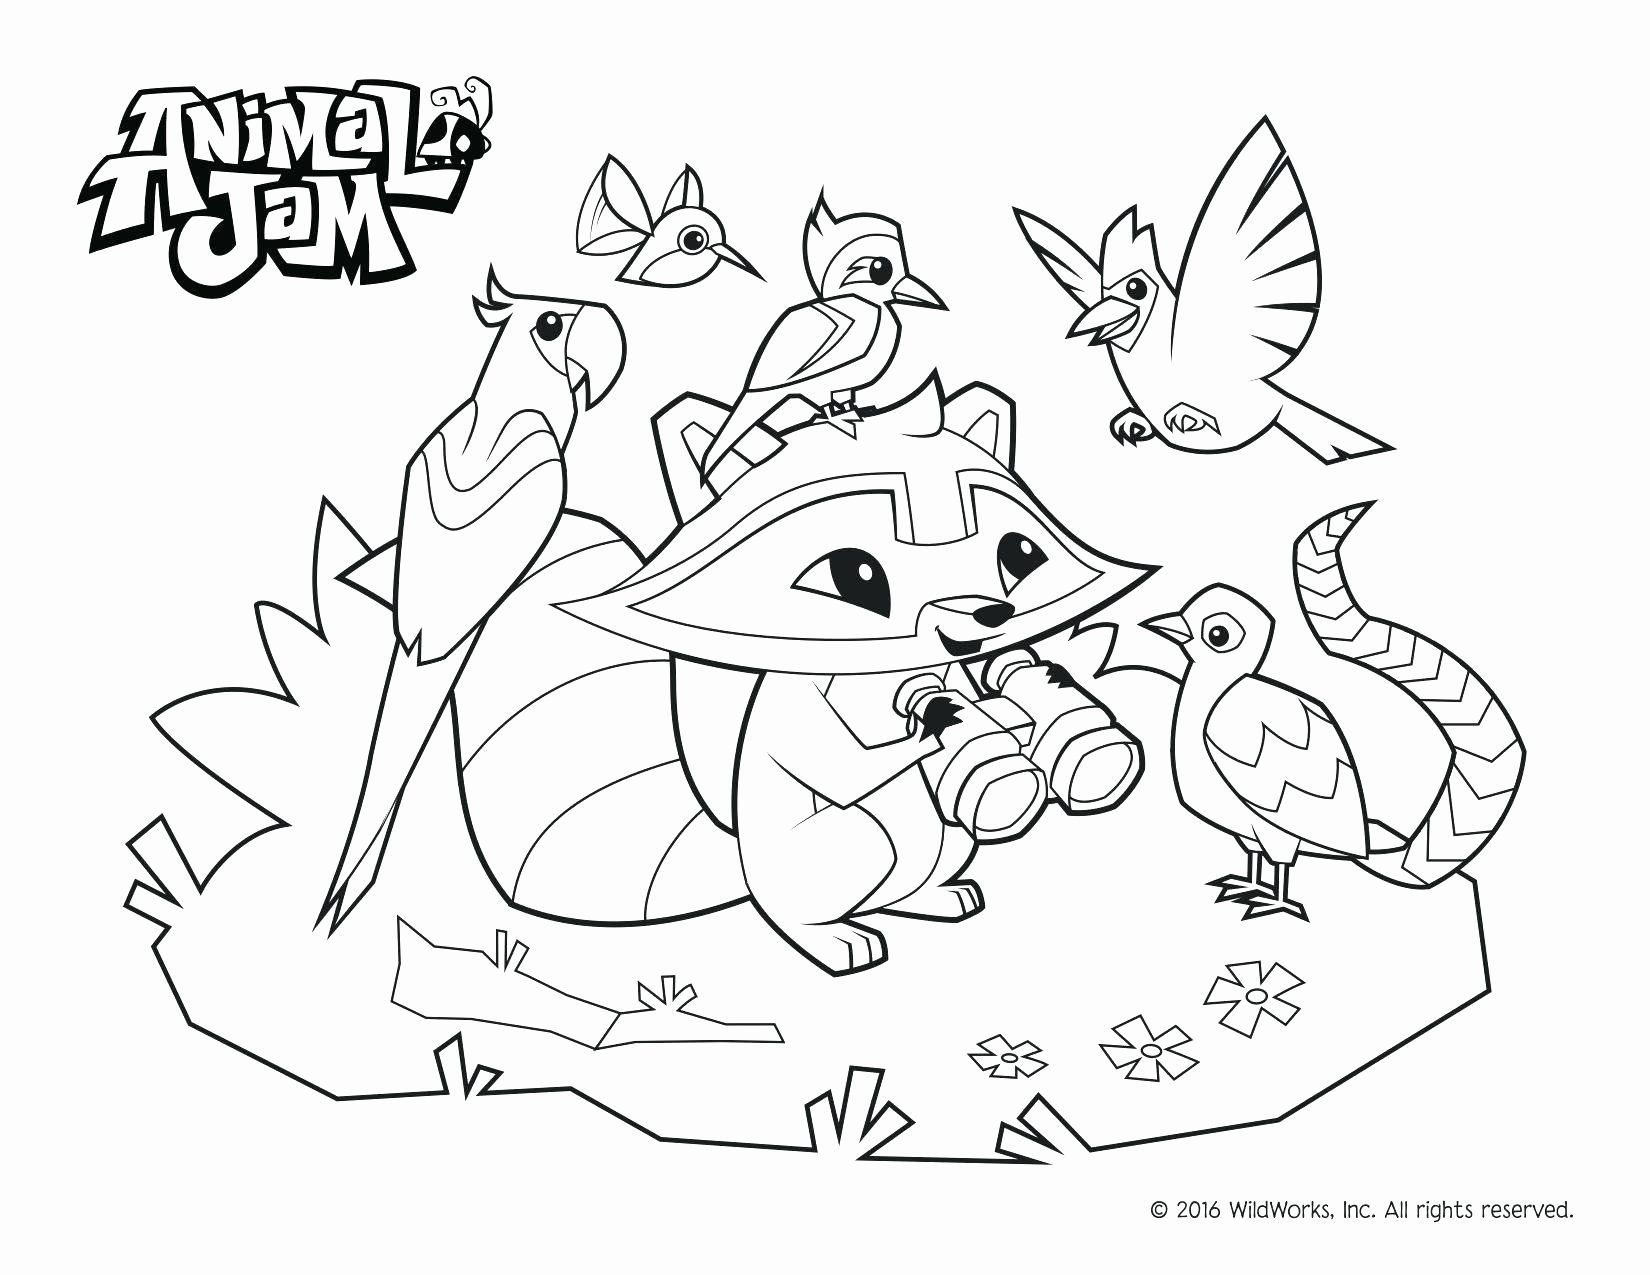 Animal Jam Coloring Pages Arctic Wolf Best Of Snow Leopard Coloring Sheet Axionsheet Animal Coloring Pages Animal Coloring Books Cartoon Coloring Pages